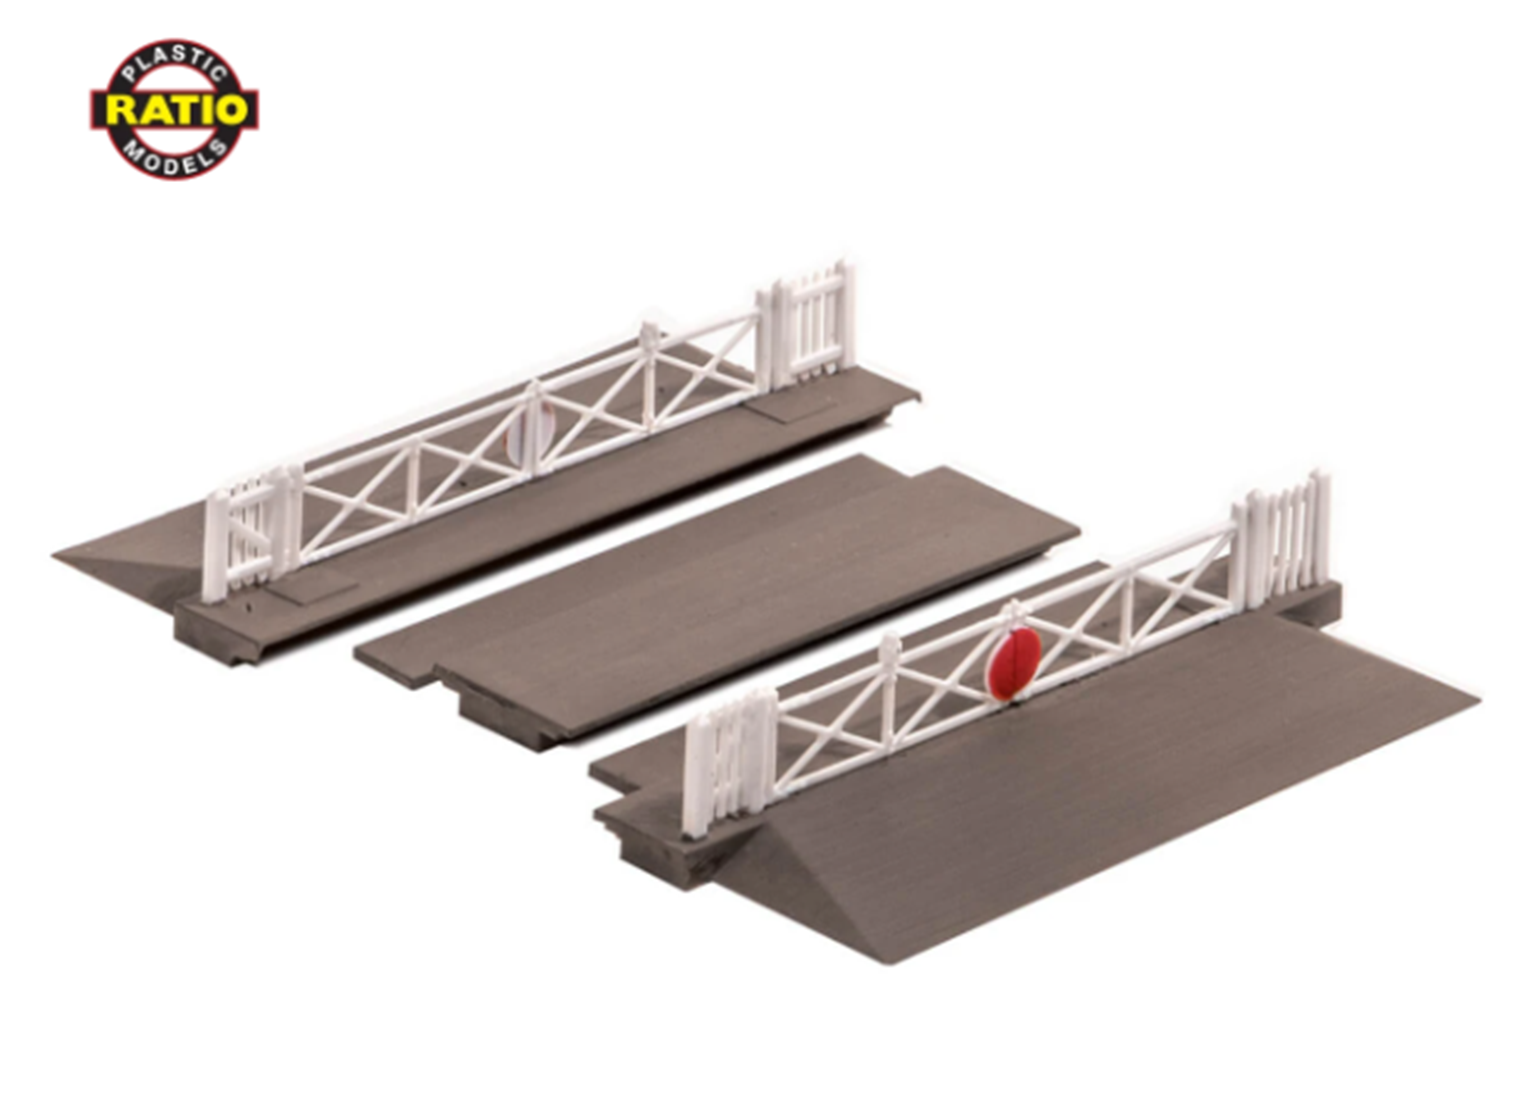 Level Crossing with gates